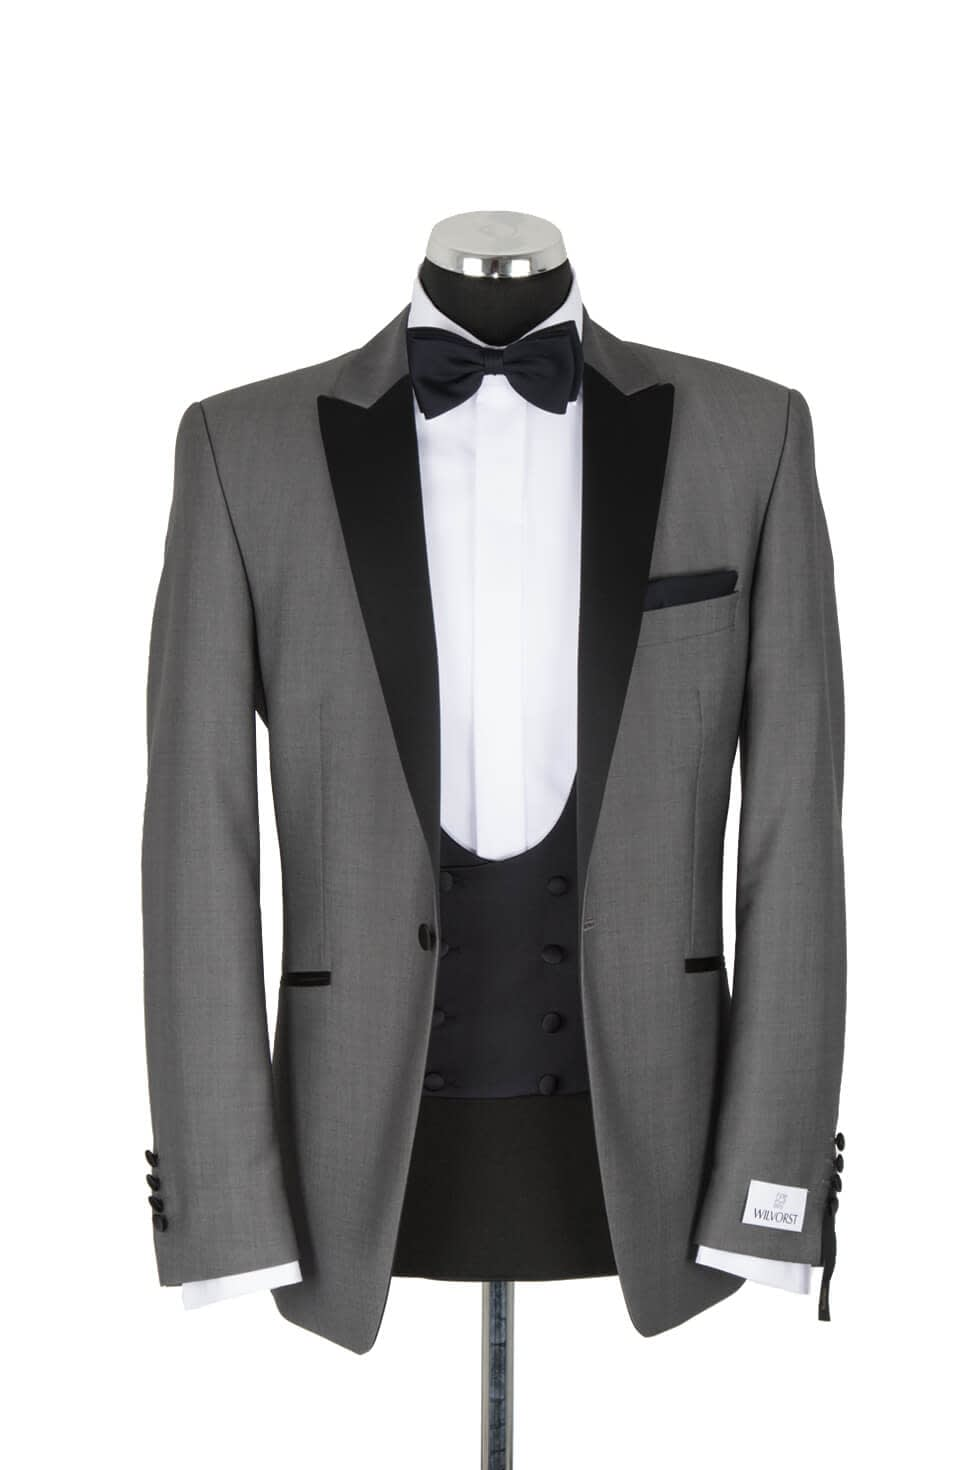 Wilvorst Grey Evening Suit